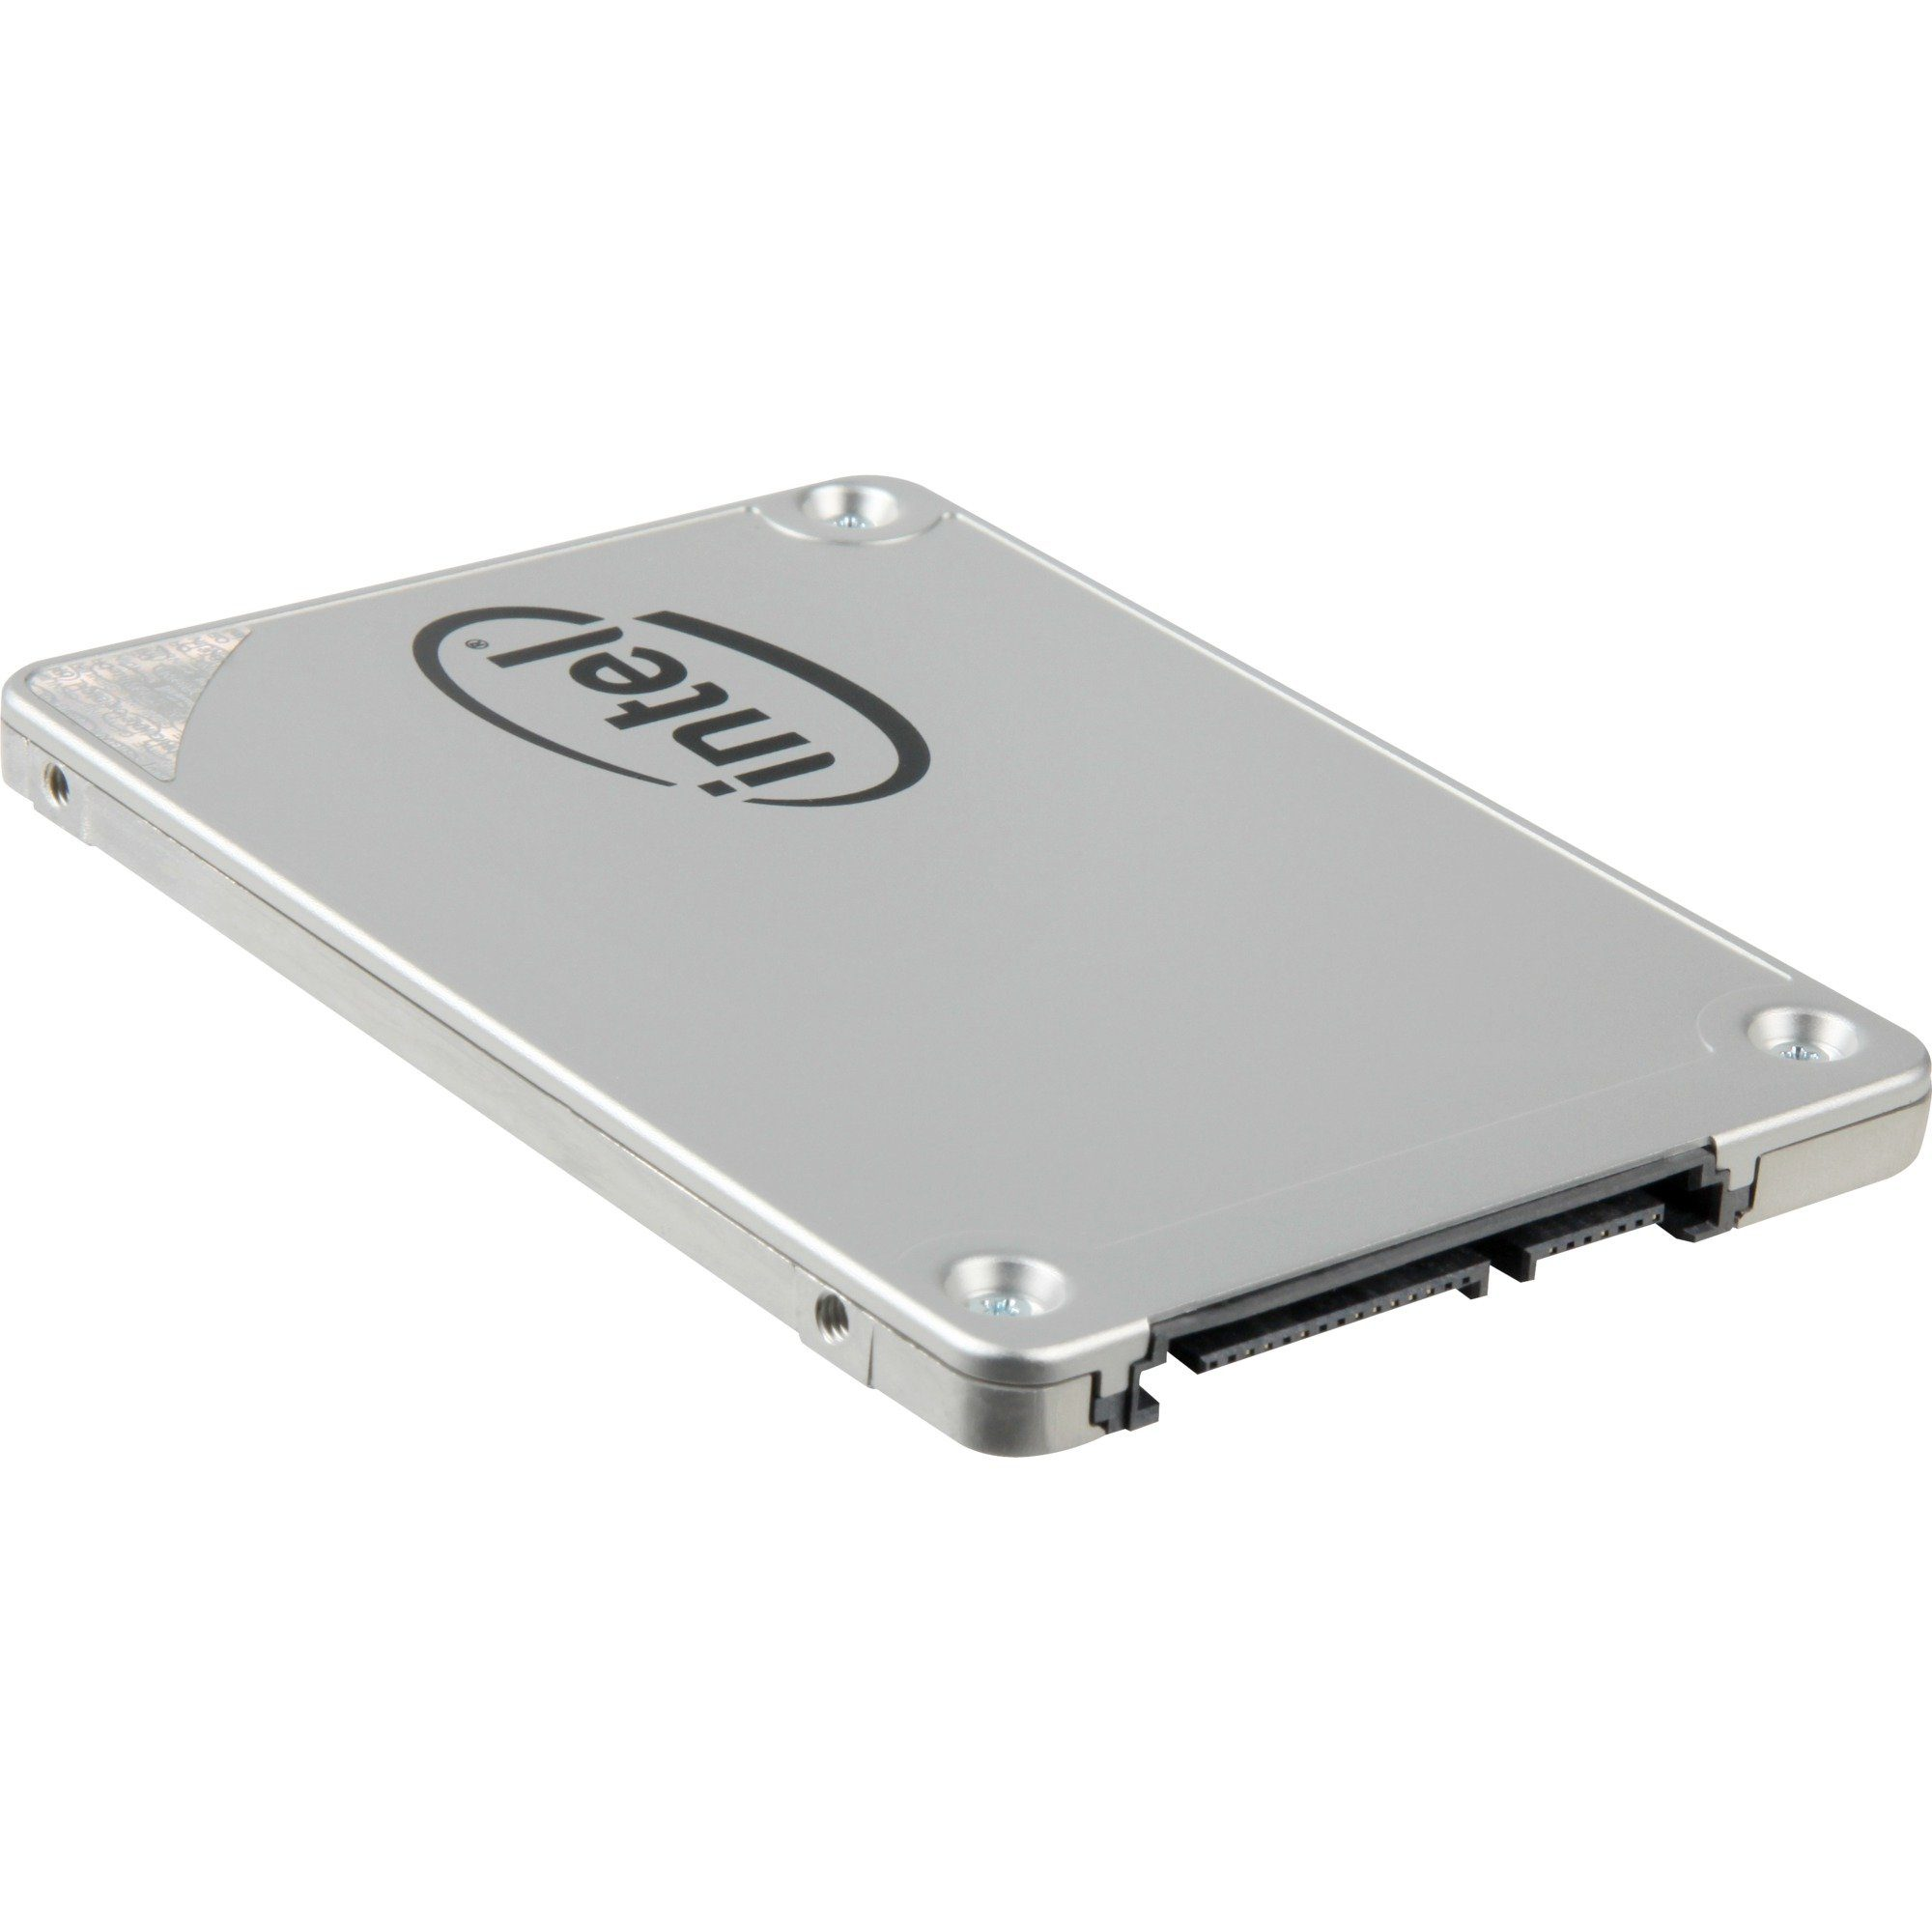 Intel® Solid State Drive »480 GB«